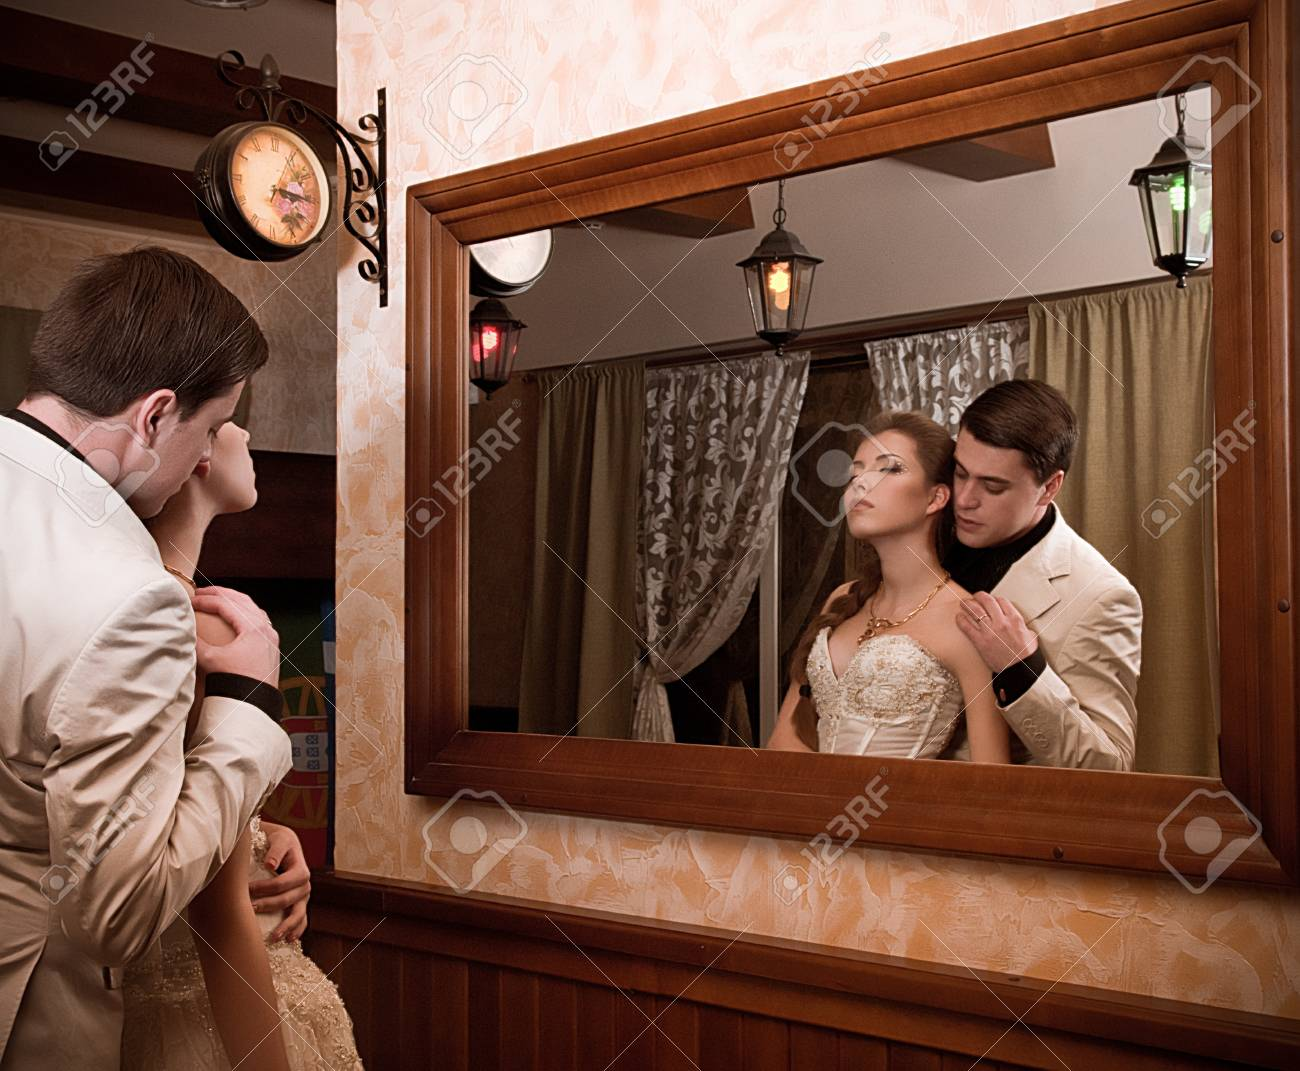 Bride and groom on their wedding day in a luxurious restaurant Stock Photo - 17065674